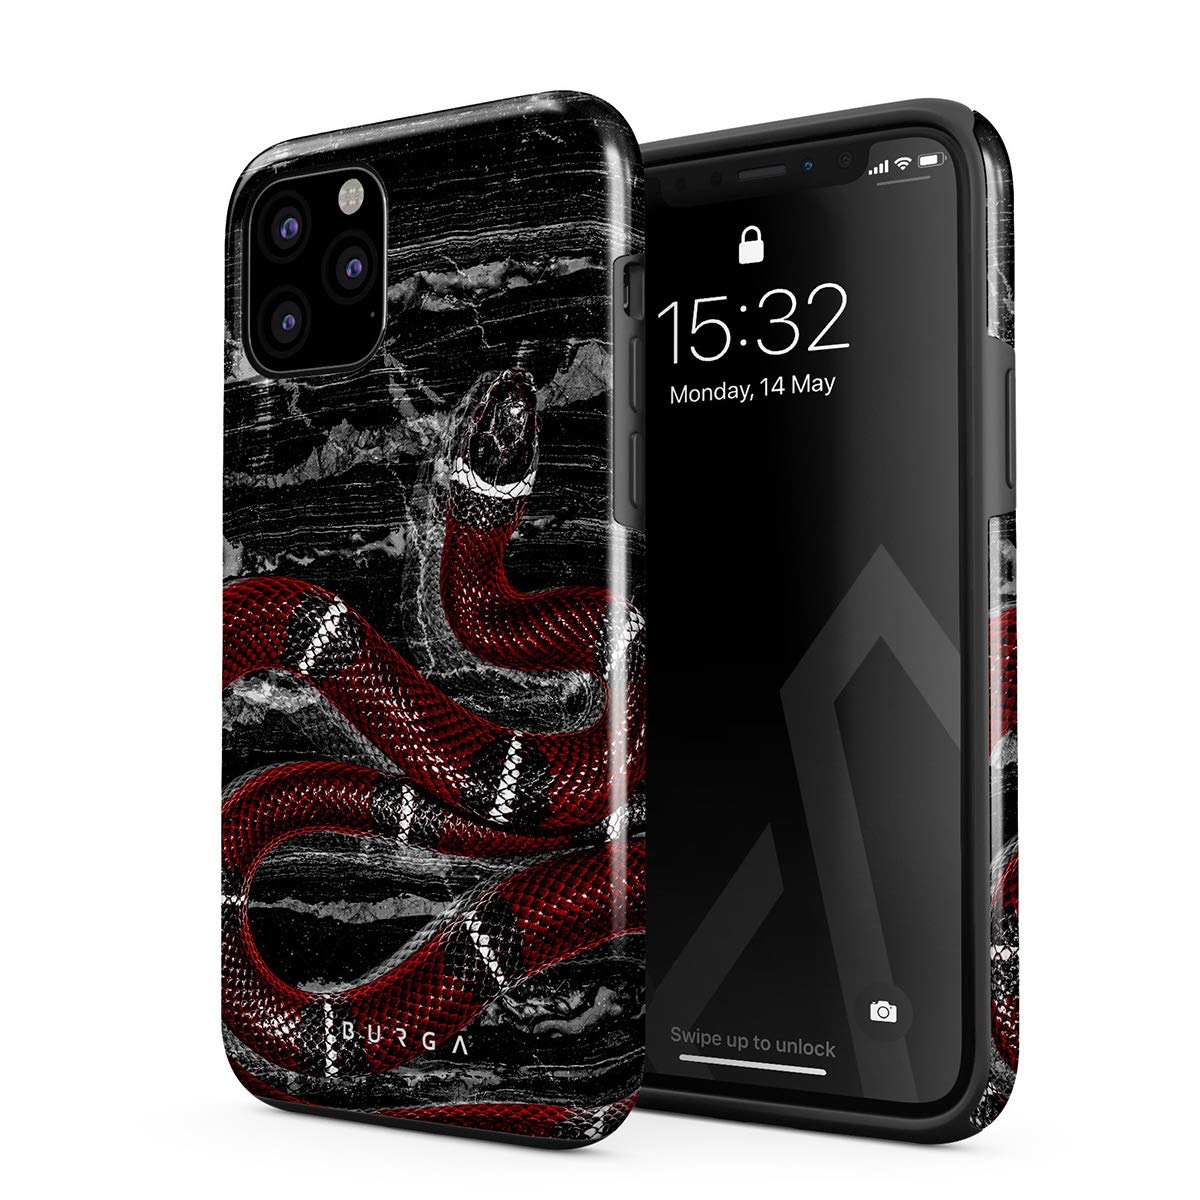 BURGA Phone Case Compatible with iPhone 11 PRO - Poisonous Kiss Savage Red Snake Cute Case for Girls Heavy Duty Shockproof Dual Layer Hard Shell + Silicone Protective Cover